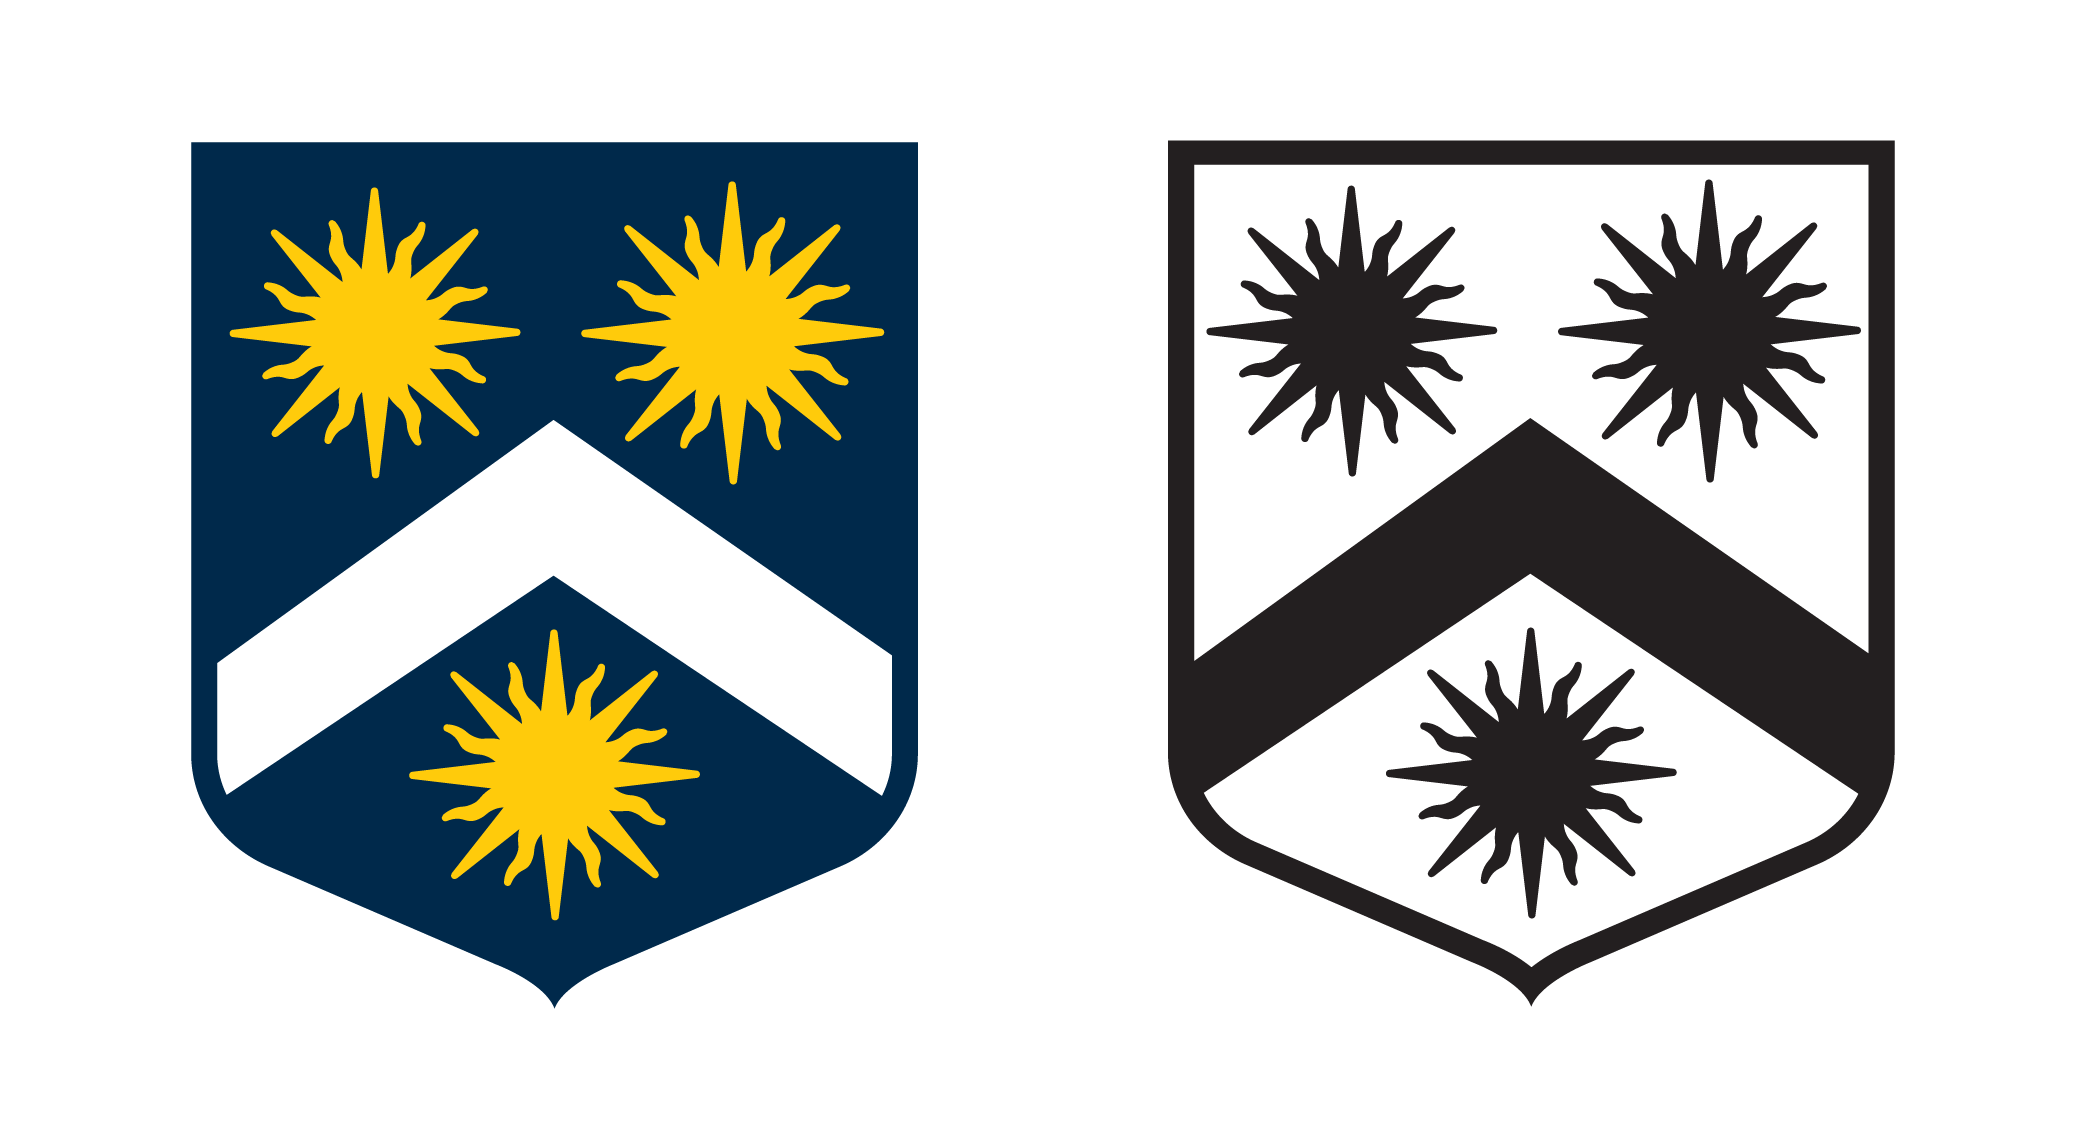 Blazon: Azure, a chevron Argent between three suns Or.  (A silver chevron between three golden suns on a blue field). For the purposes of using it as a logo i have also made a b/w version to be used when appropriate.